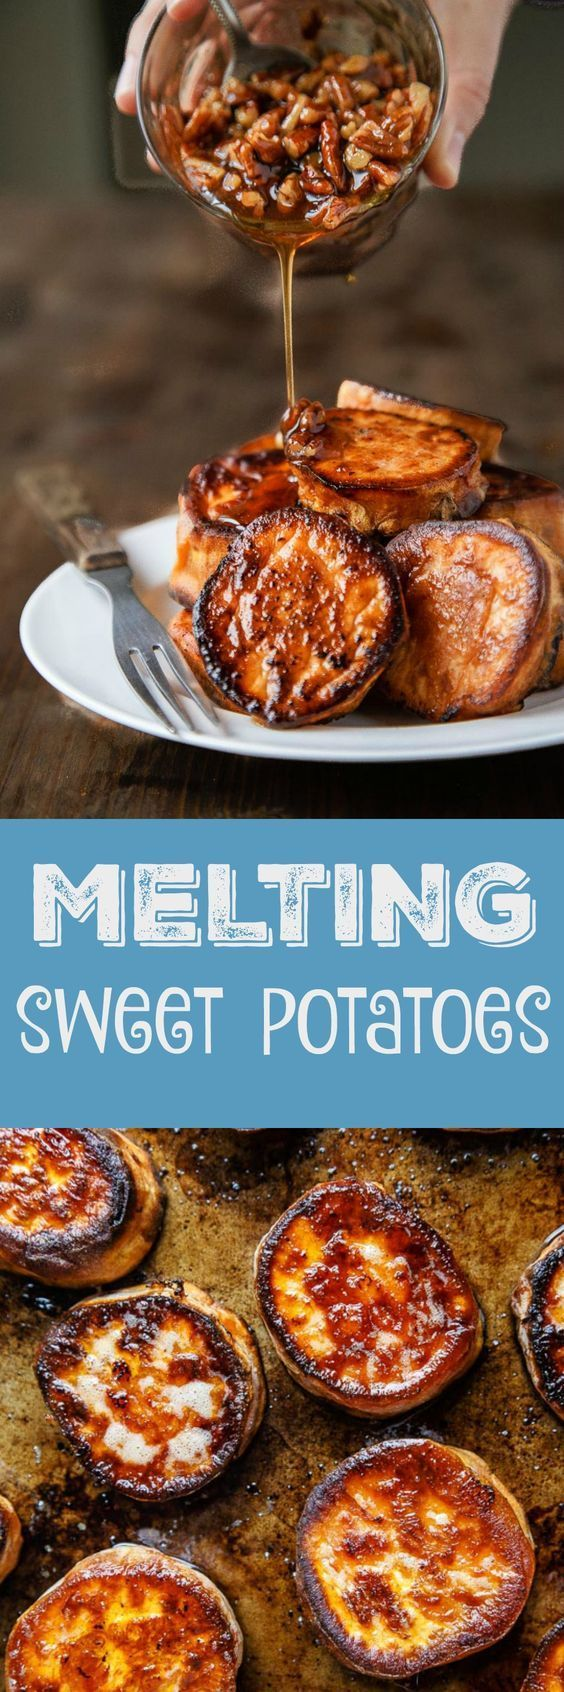 Melting potatoes, sweet potato version! The BEST oven roasted sweet potato recipe. Like, ever.